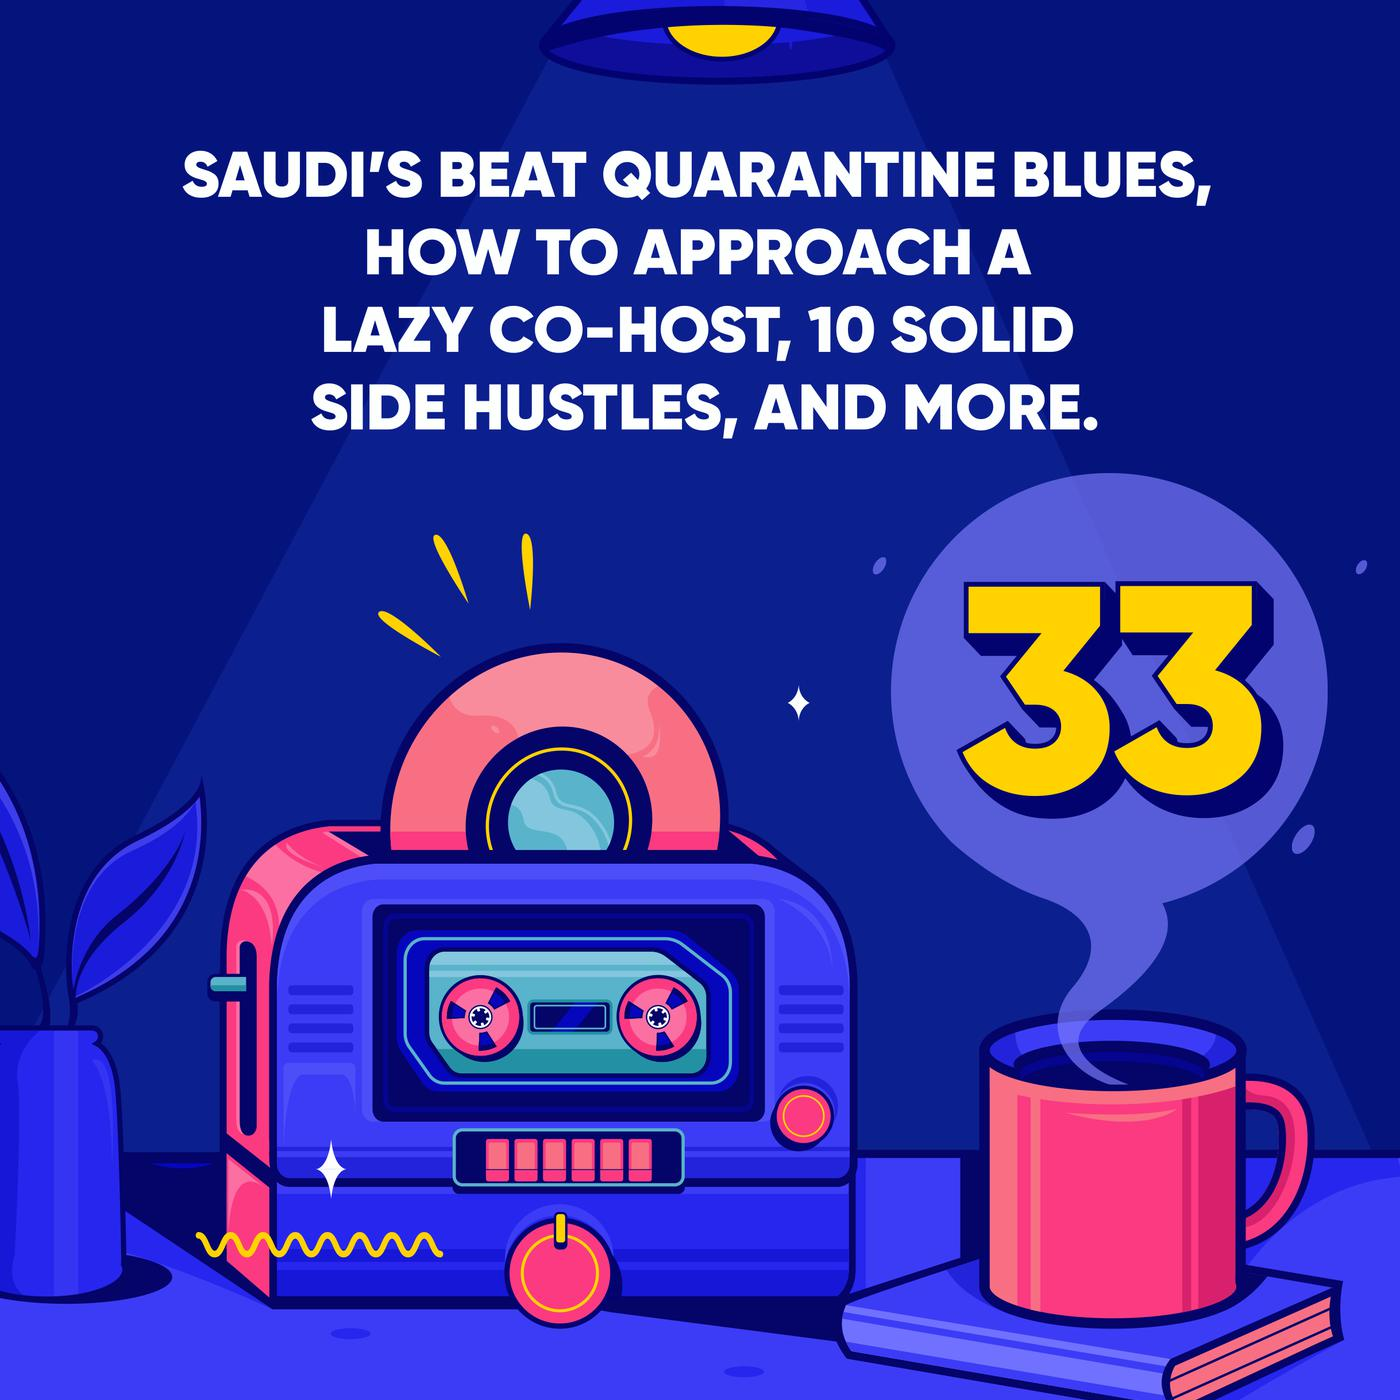 Saudi's Beat Quarantine Blues, how to Approach a Lazy Co-host, 10 Solid Side Hustles, and More.